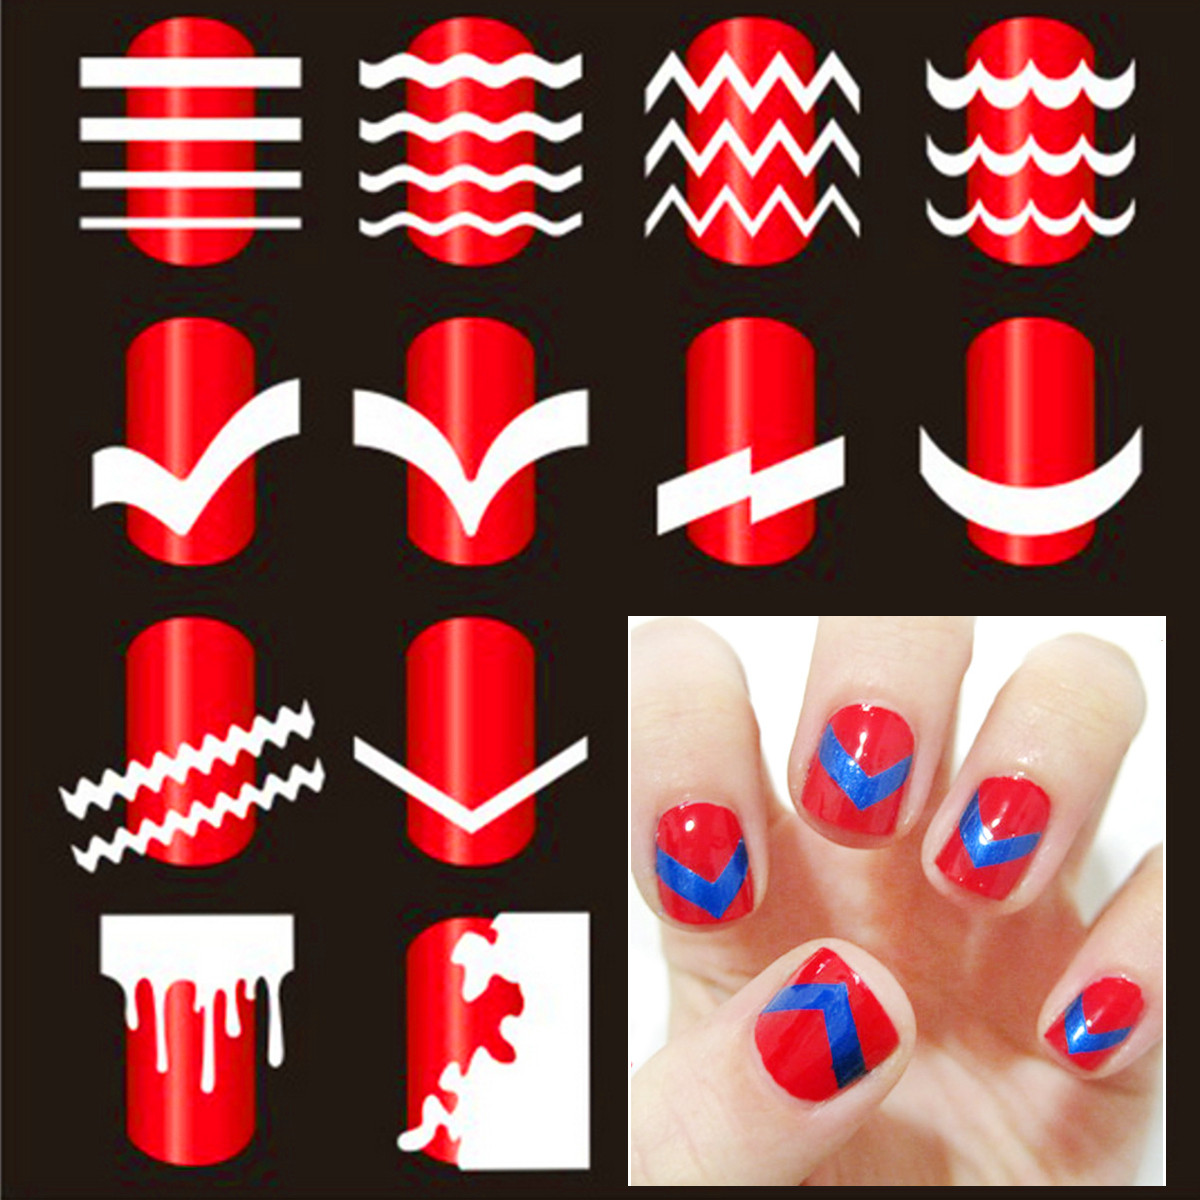 French Nail Art Tip Tape Guide Stencil Manicure Tool For Sticker ...